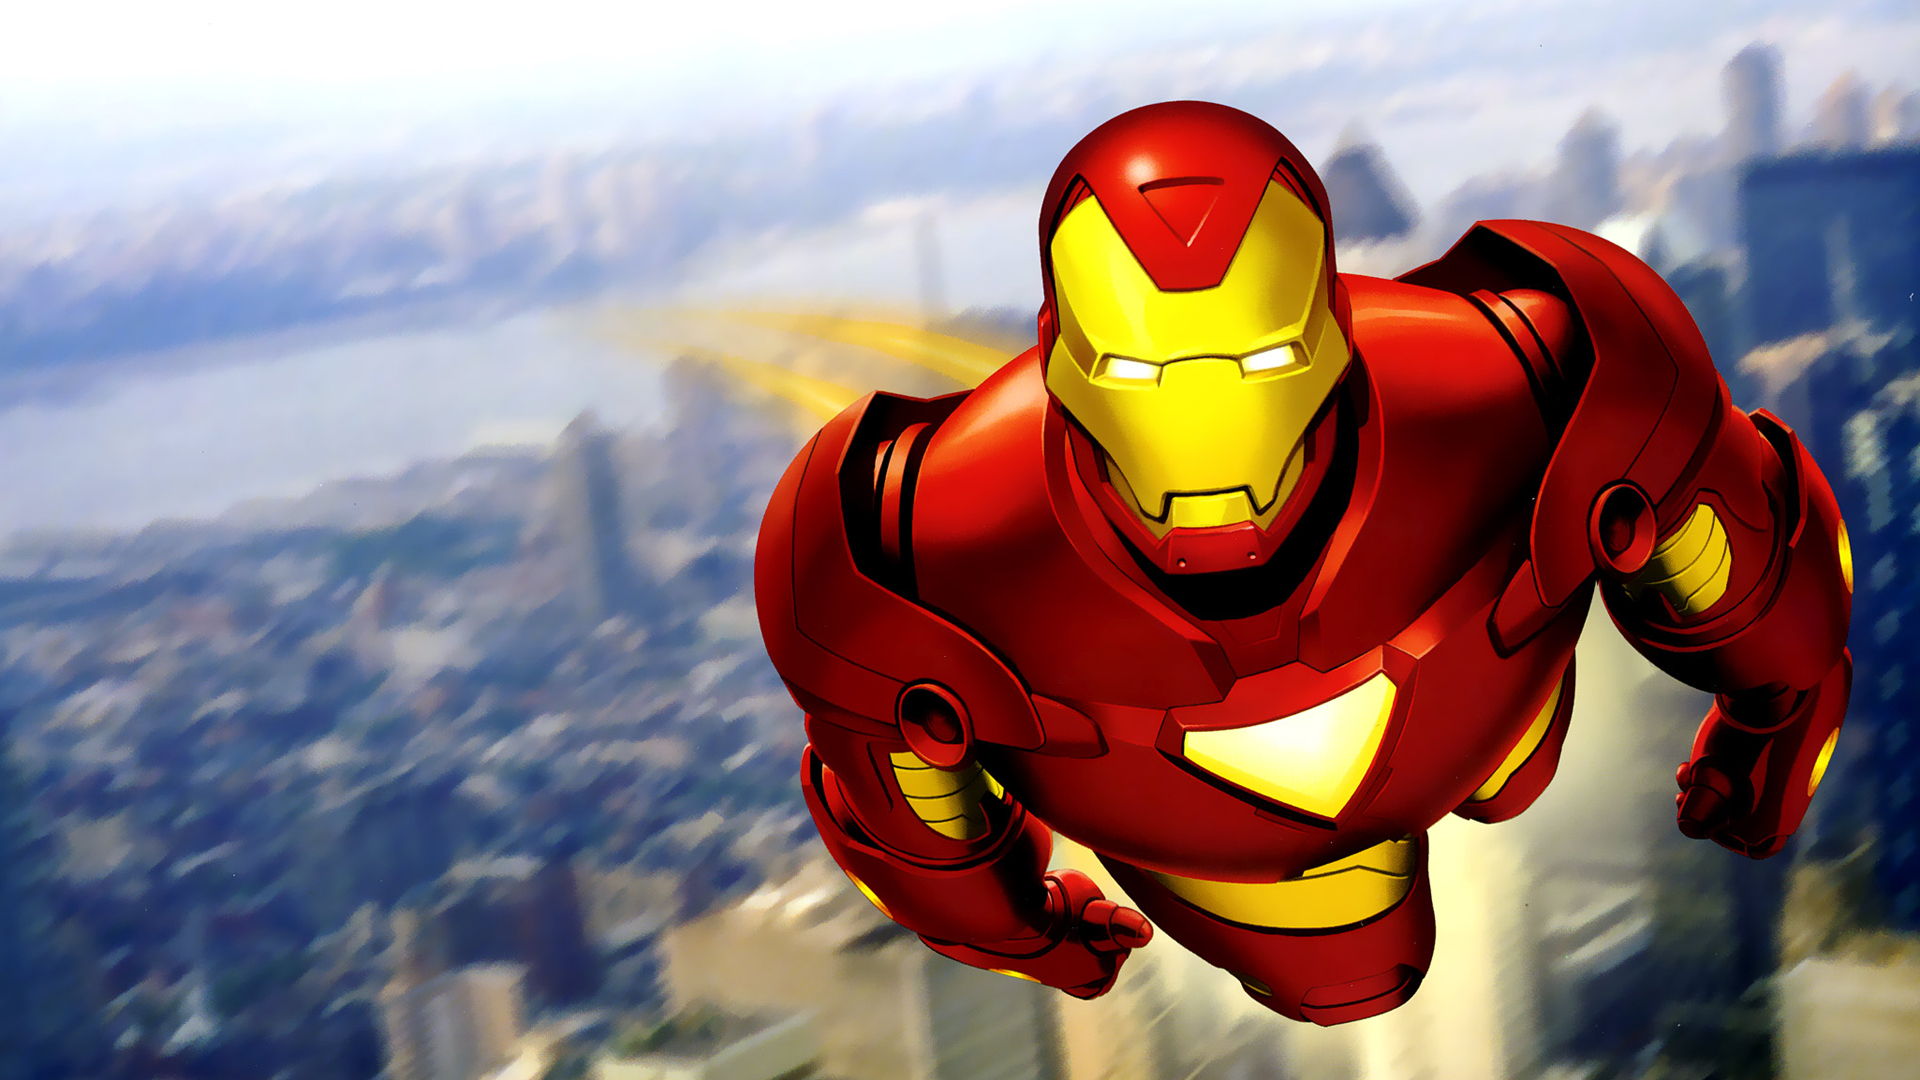 Download Iron Man Cartoon Wallpaper Gallery